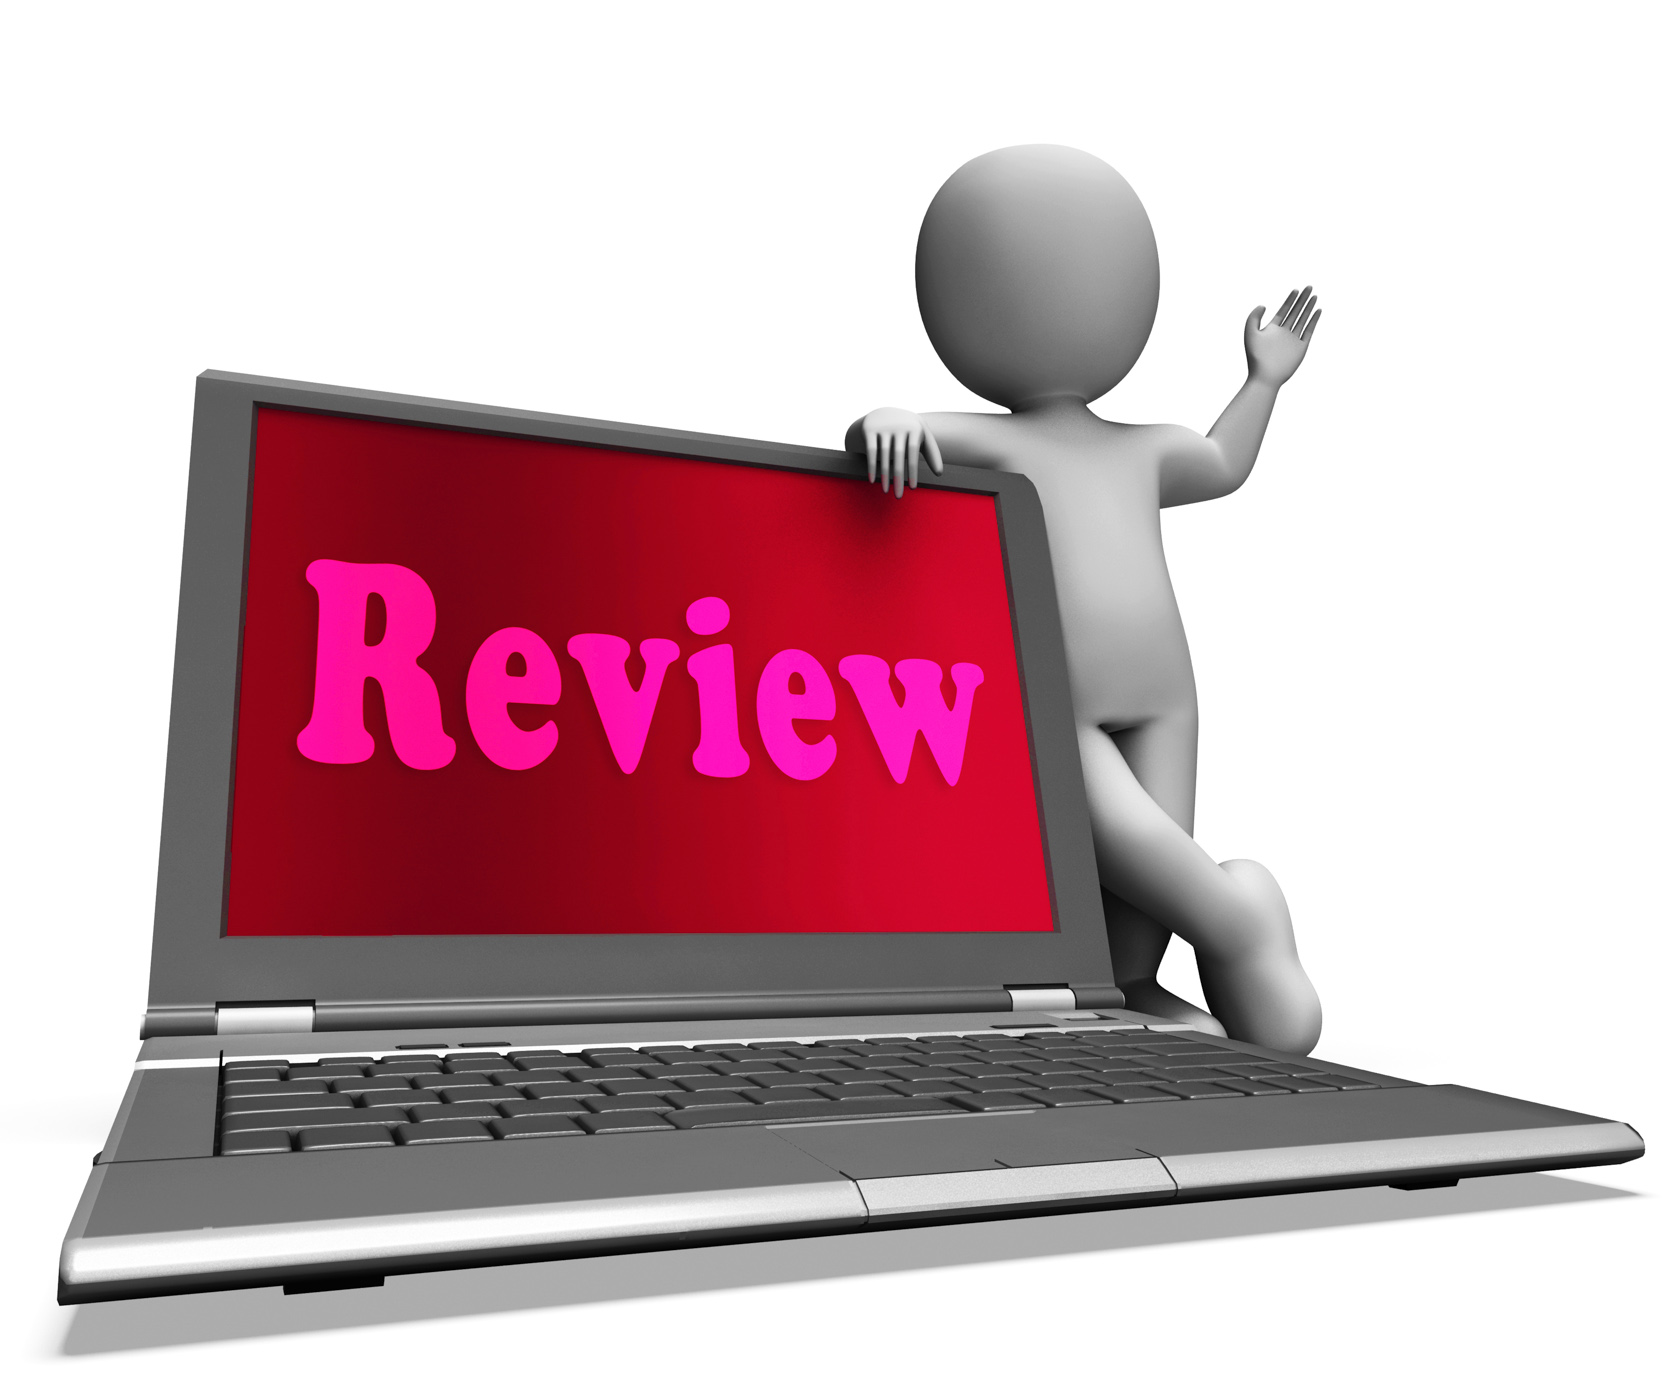 Review Laptop Means Check Evaluation Or Reassess, 3d, Recheck, Thinkover, Revision, HQ Photo